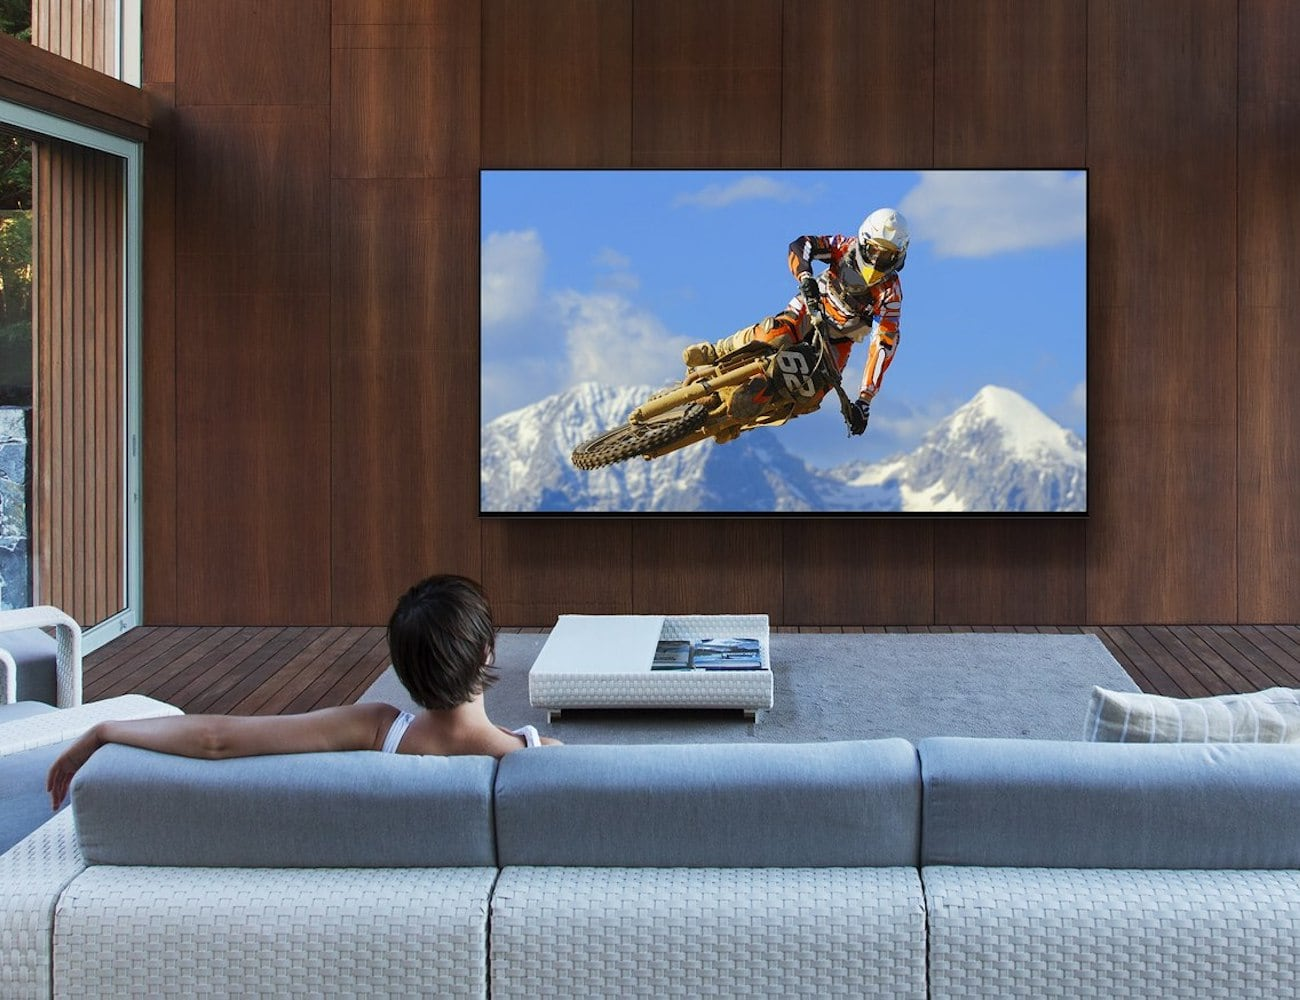 Sony Master Series Z9G 8K HDR TV delivers a superior picture